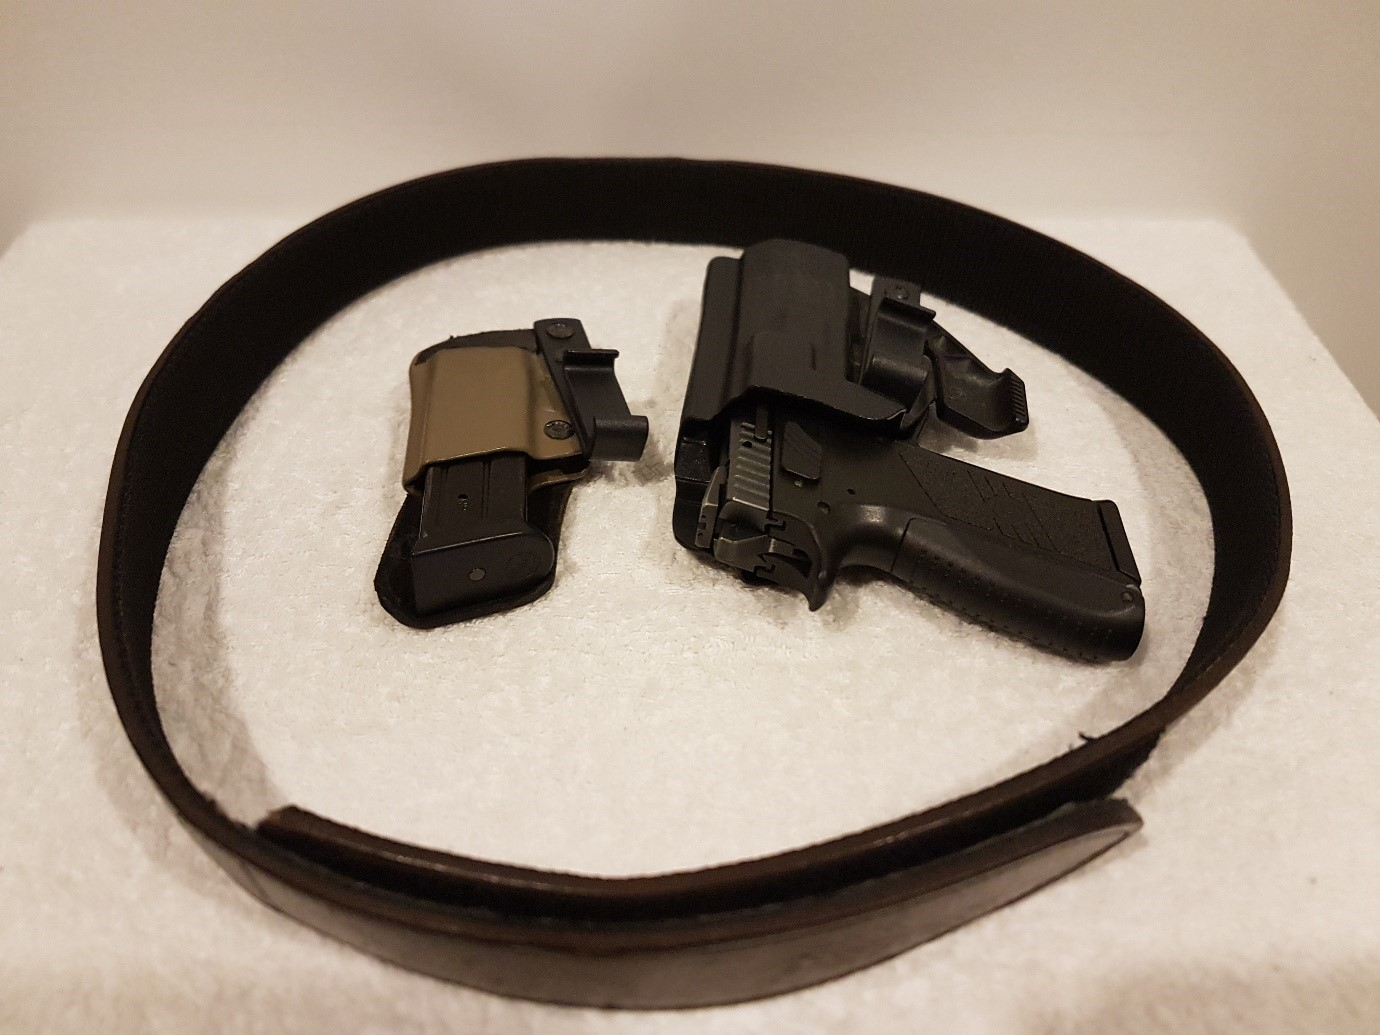 Review: Army Ant Gear EDC Gun Belt